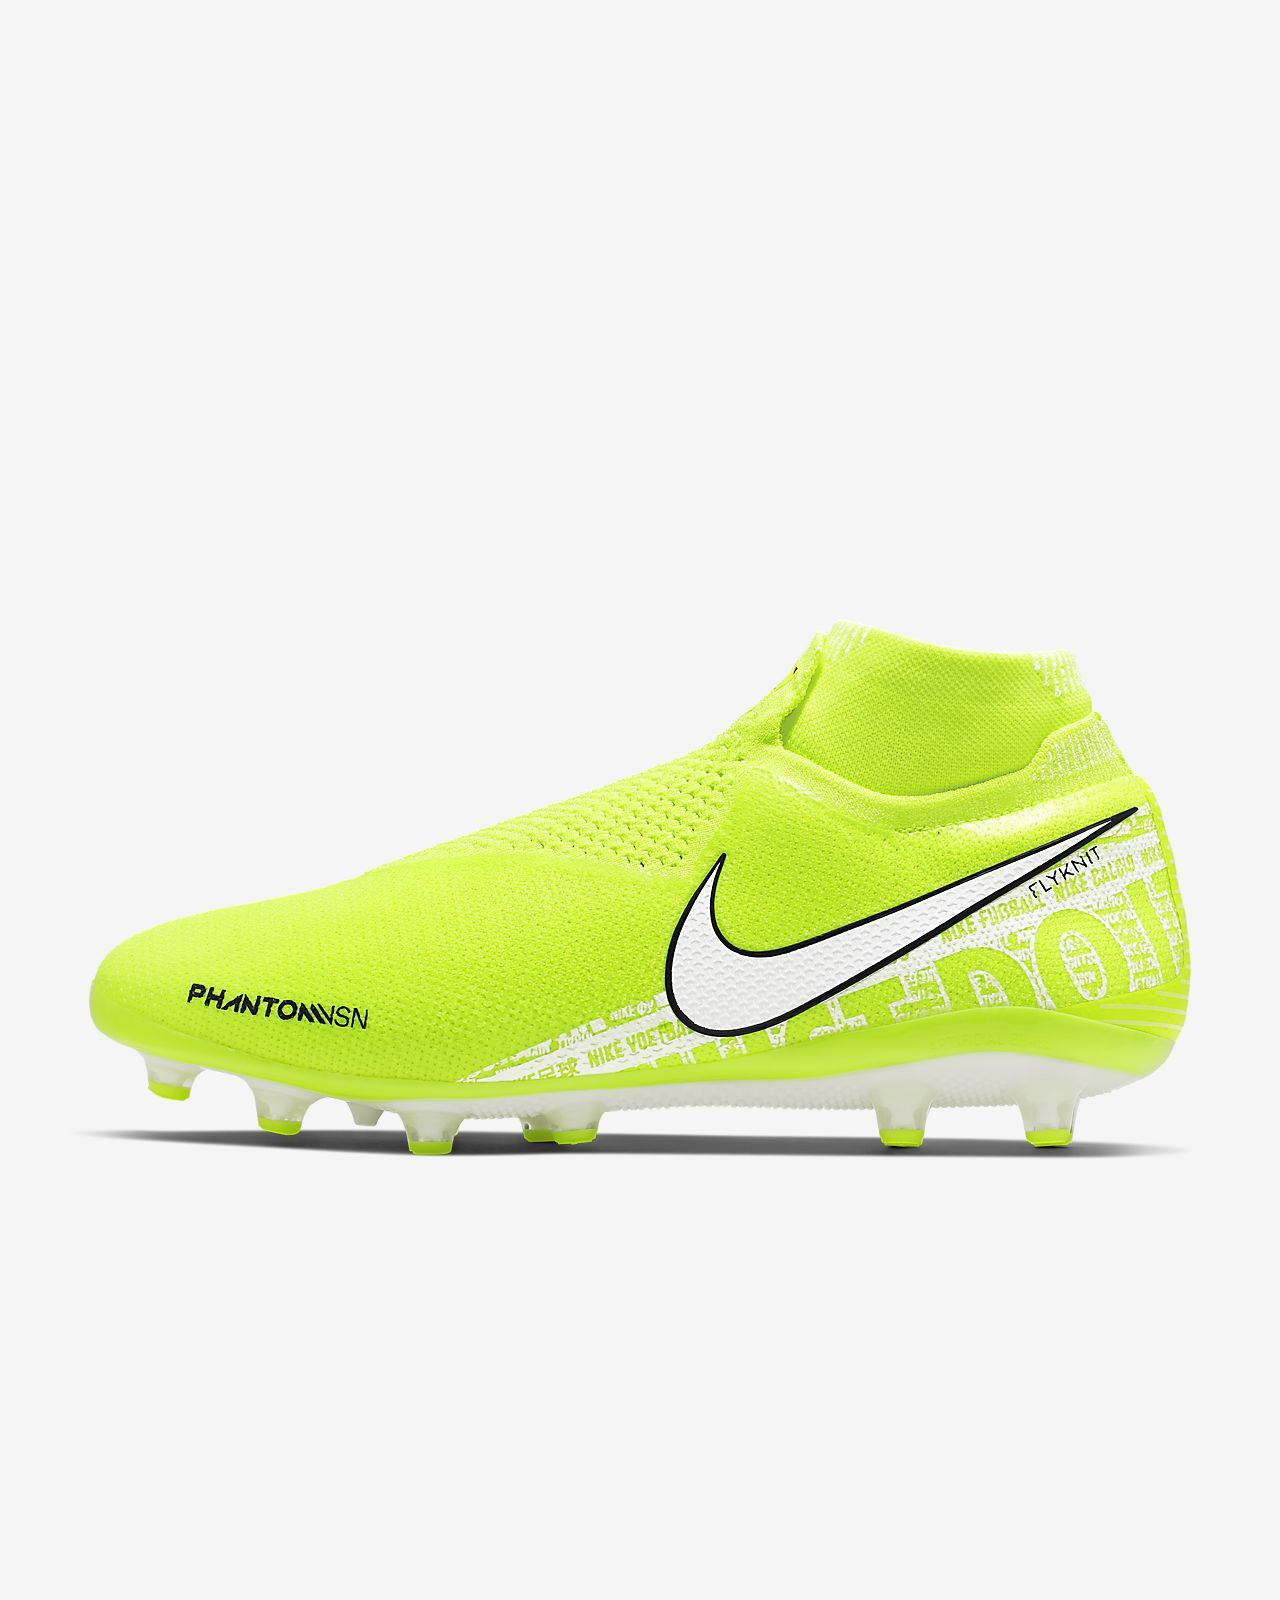 Nike Phantom Vision Elite Dynamic Fit Botas de fútbol para césped artificial